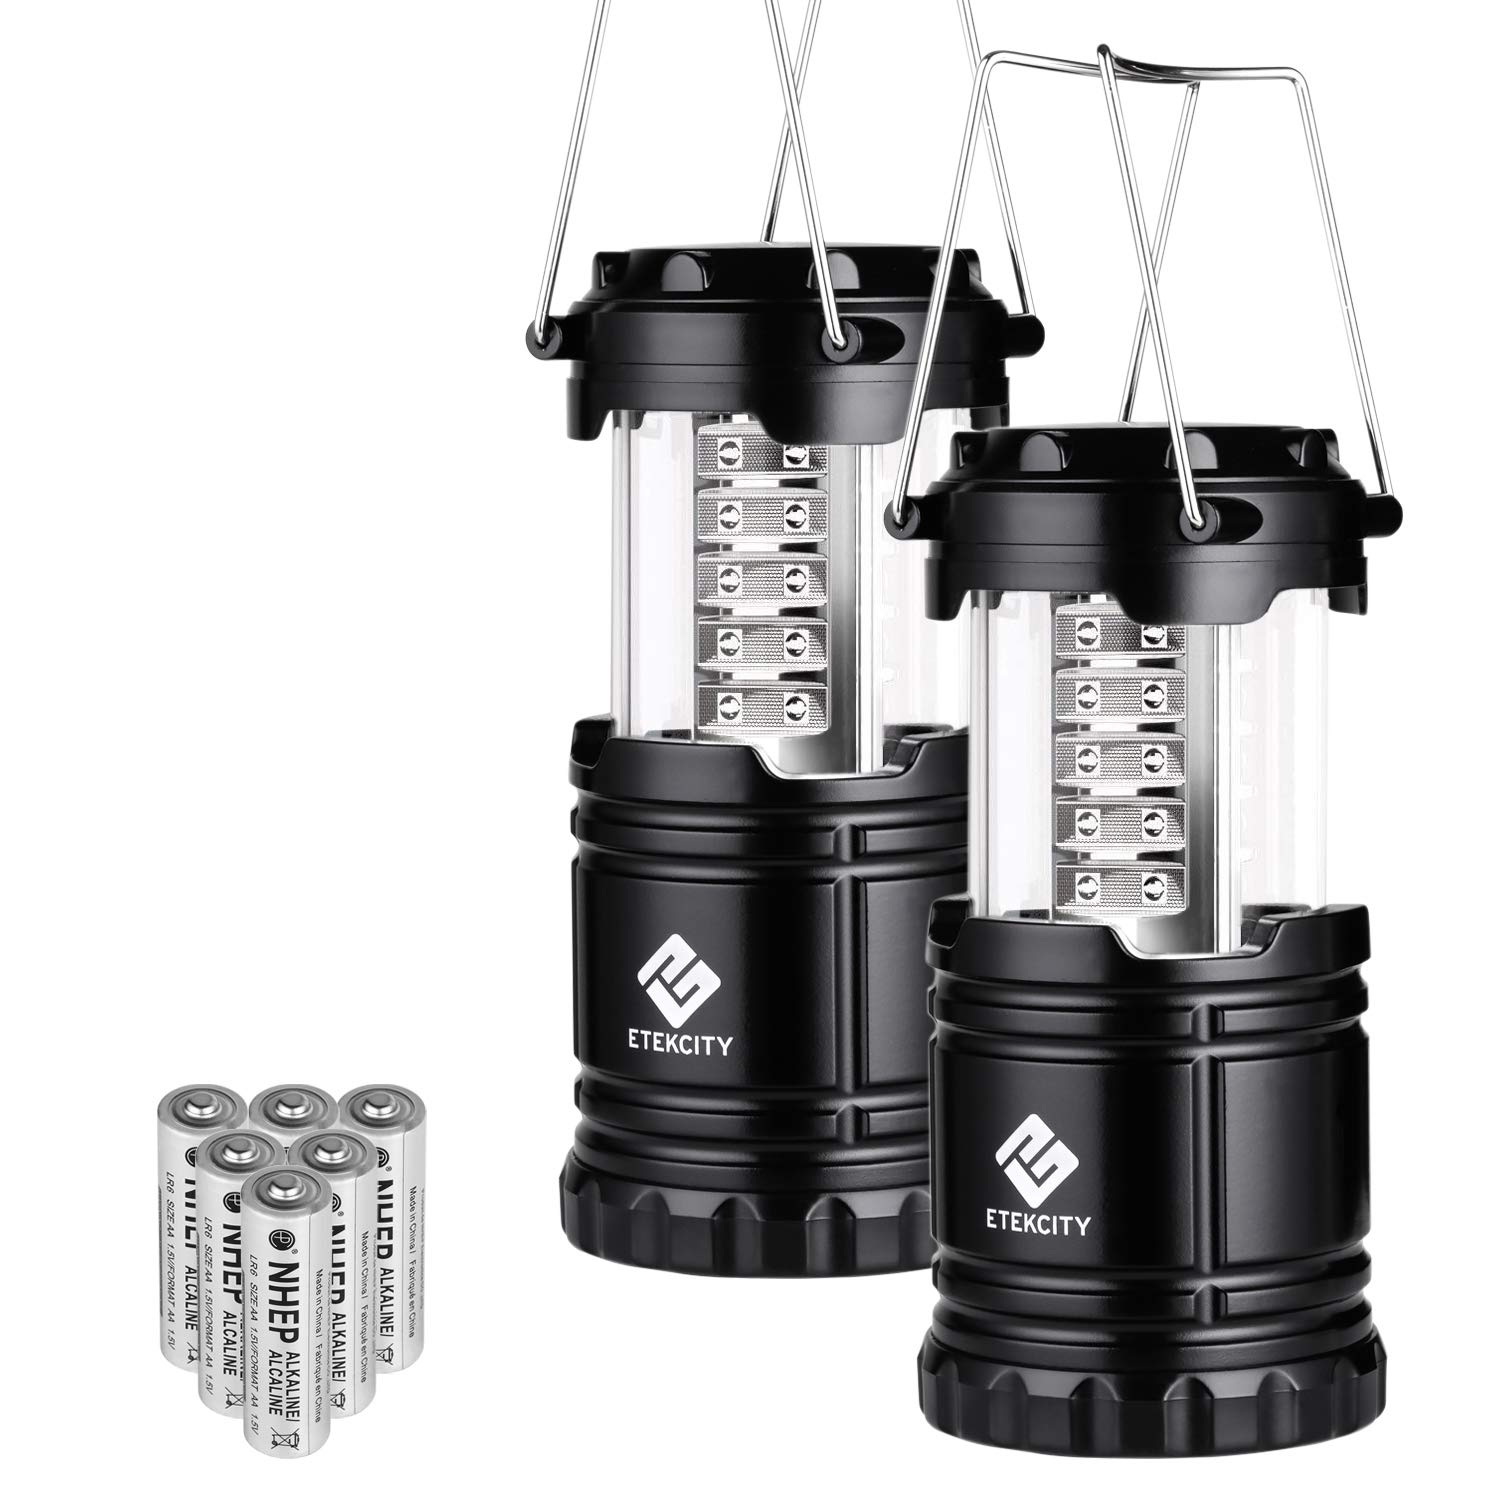 Etekcity LED Camping Lantern Portable Flashlight with AA Batteries - Survival Kit for Emergency, Hurricane, Power Outage, CL10 (Black, Collapsible) (2 Pack) by Etekcity